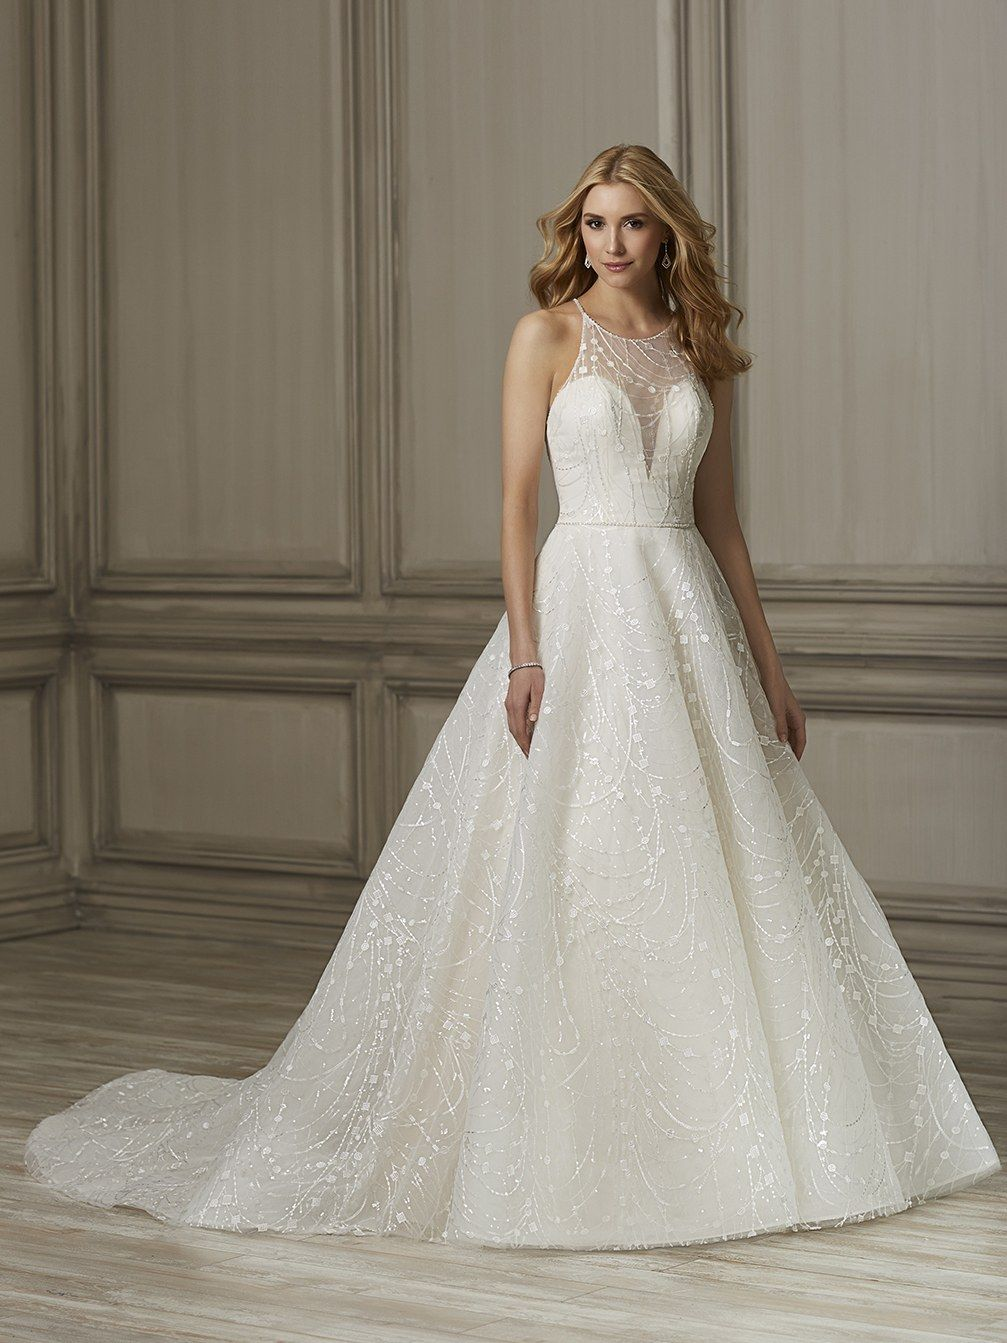 Halter neck lace illusion over the base bodice with sweetheart